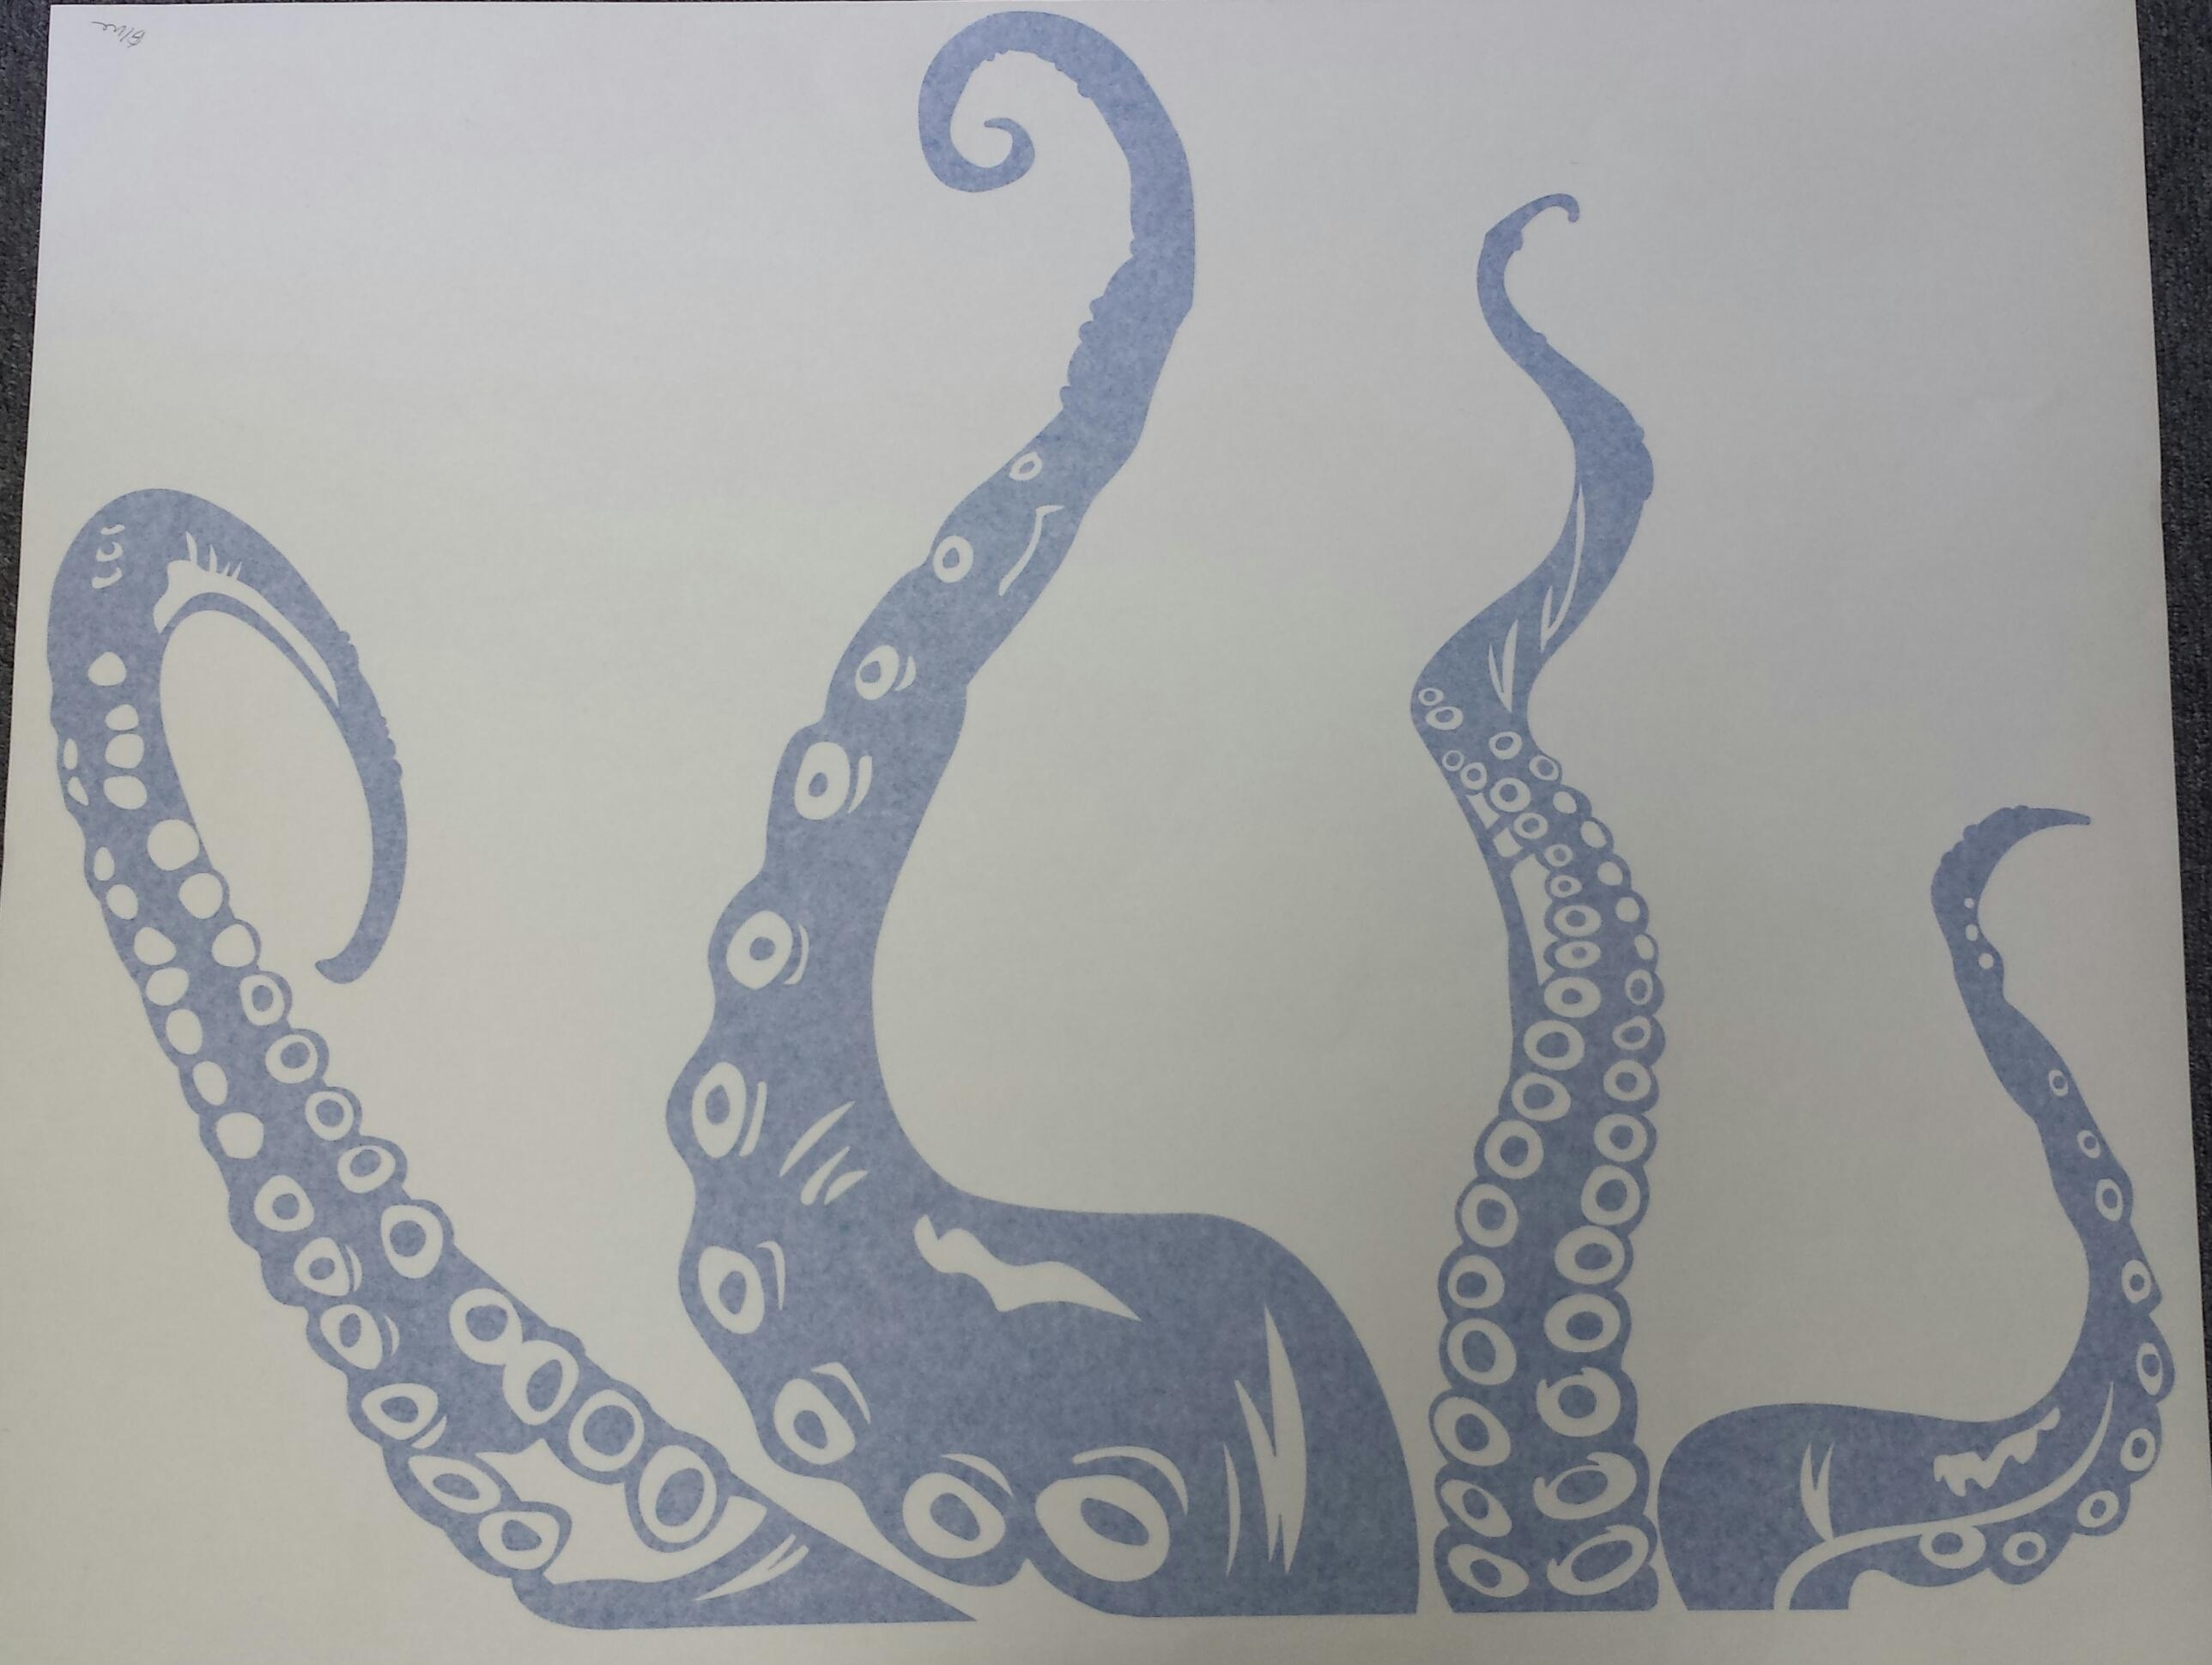 "Clearance] Blue 36"" Octopus Tentacles Wall Art Decal In Octopus Tentacle Wall Art (View 6 of 20)"